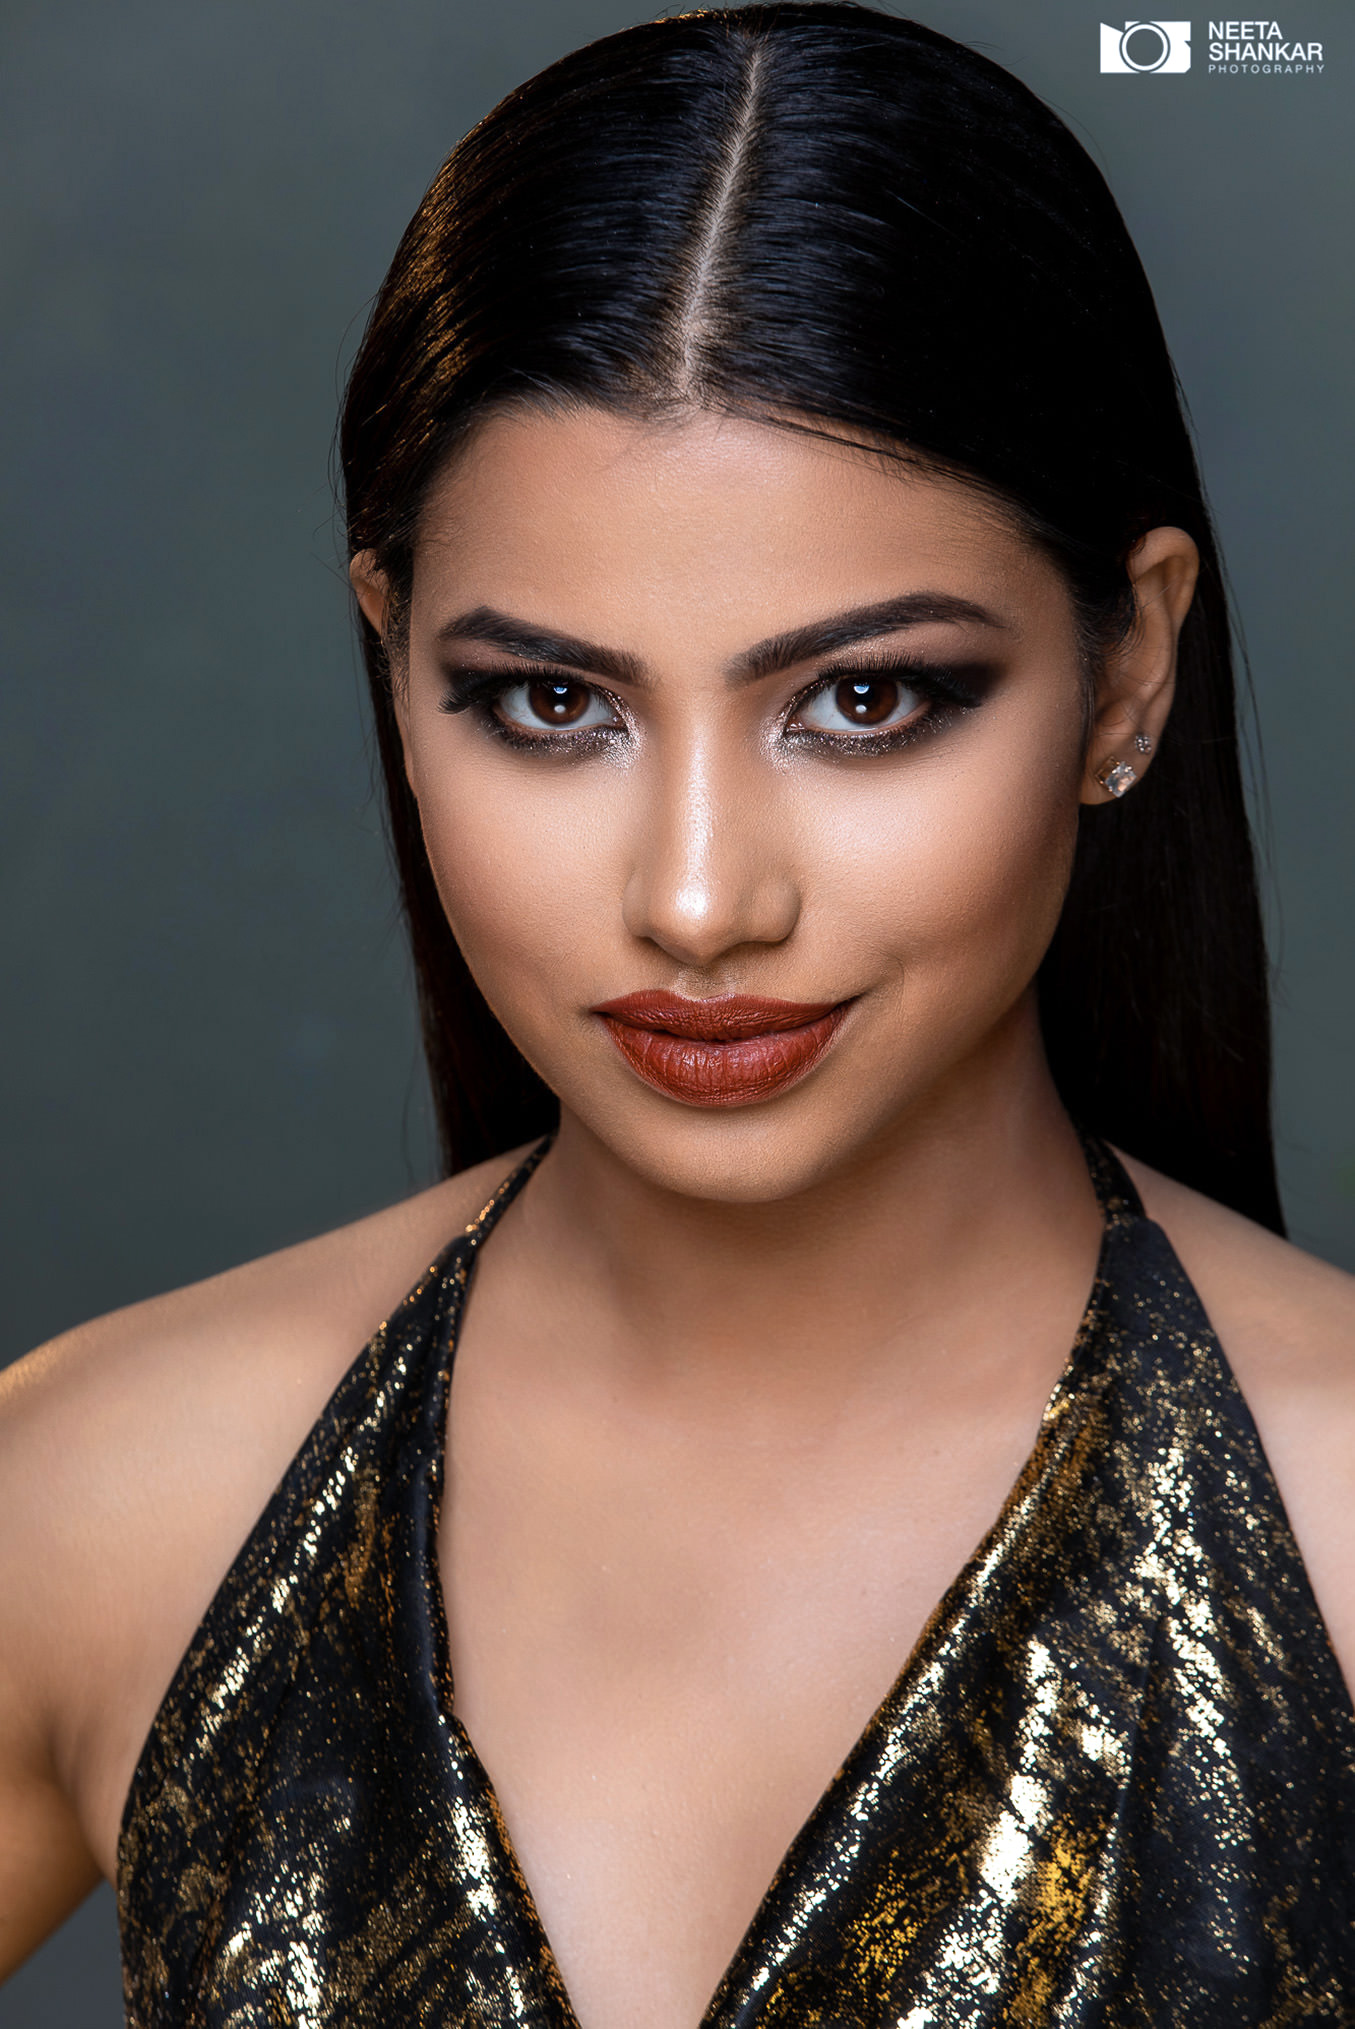 Neeta-Shankar-Photography-Portrait-Photoshoot-Model-Portfolio-Beauty-Fashion